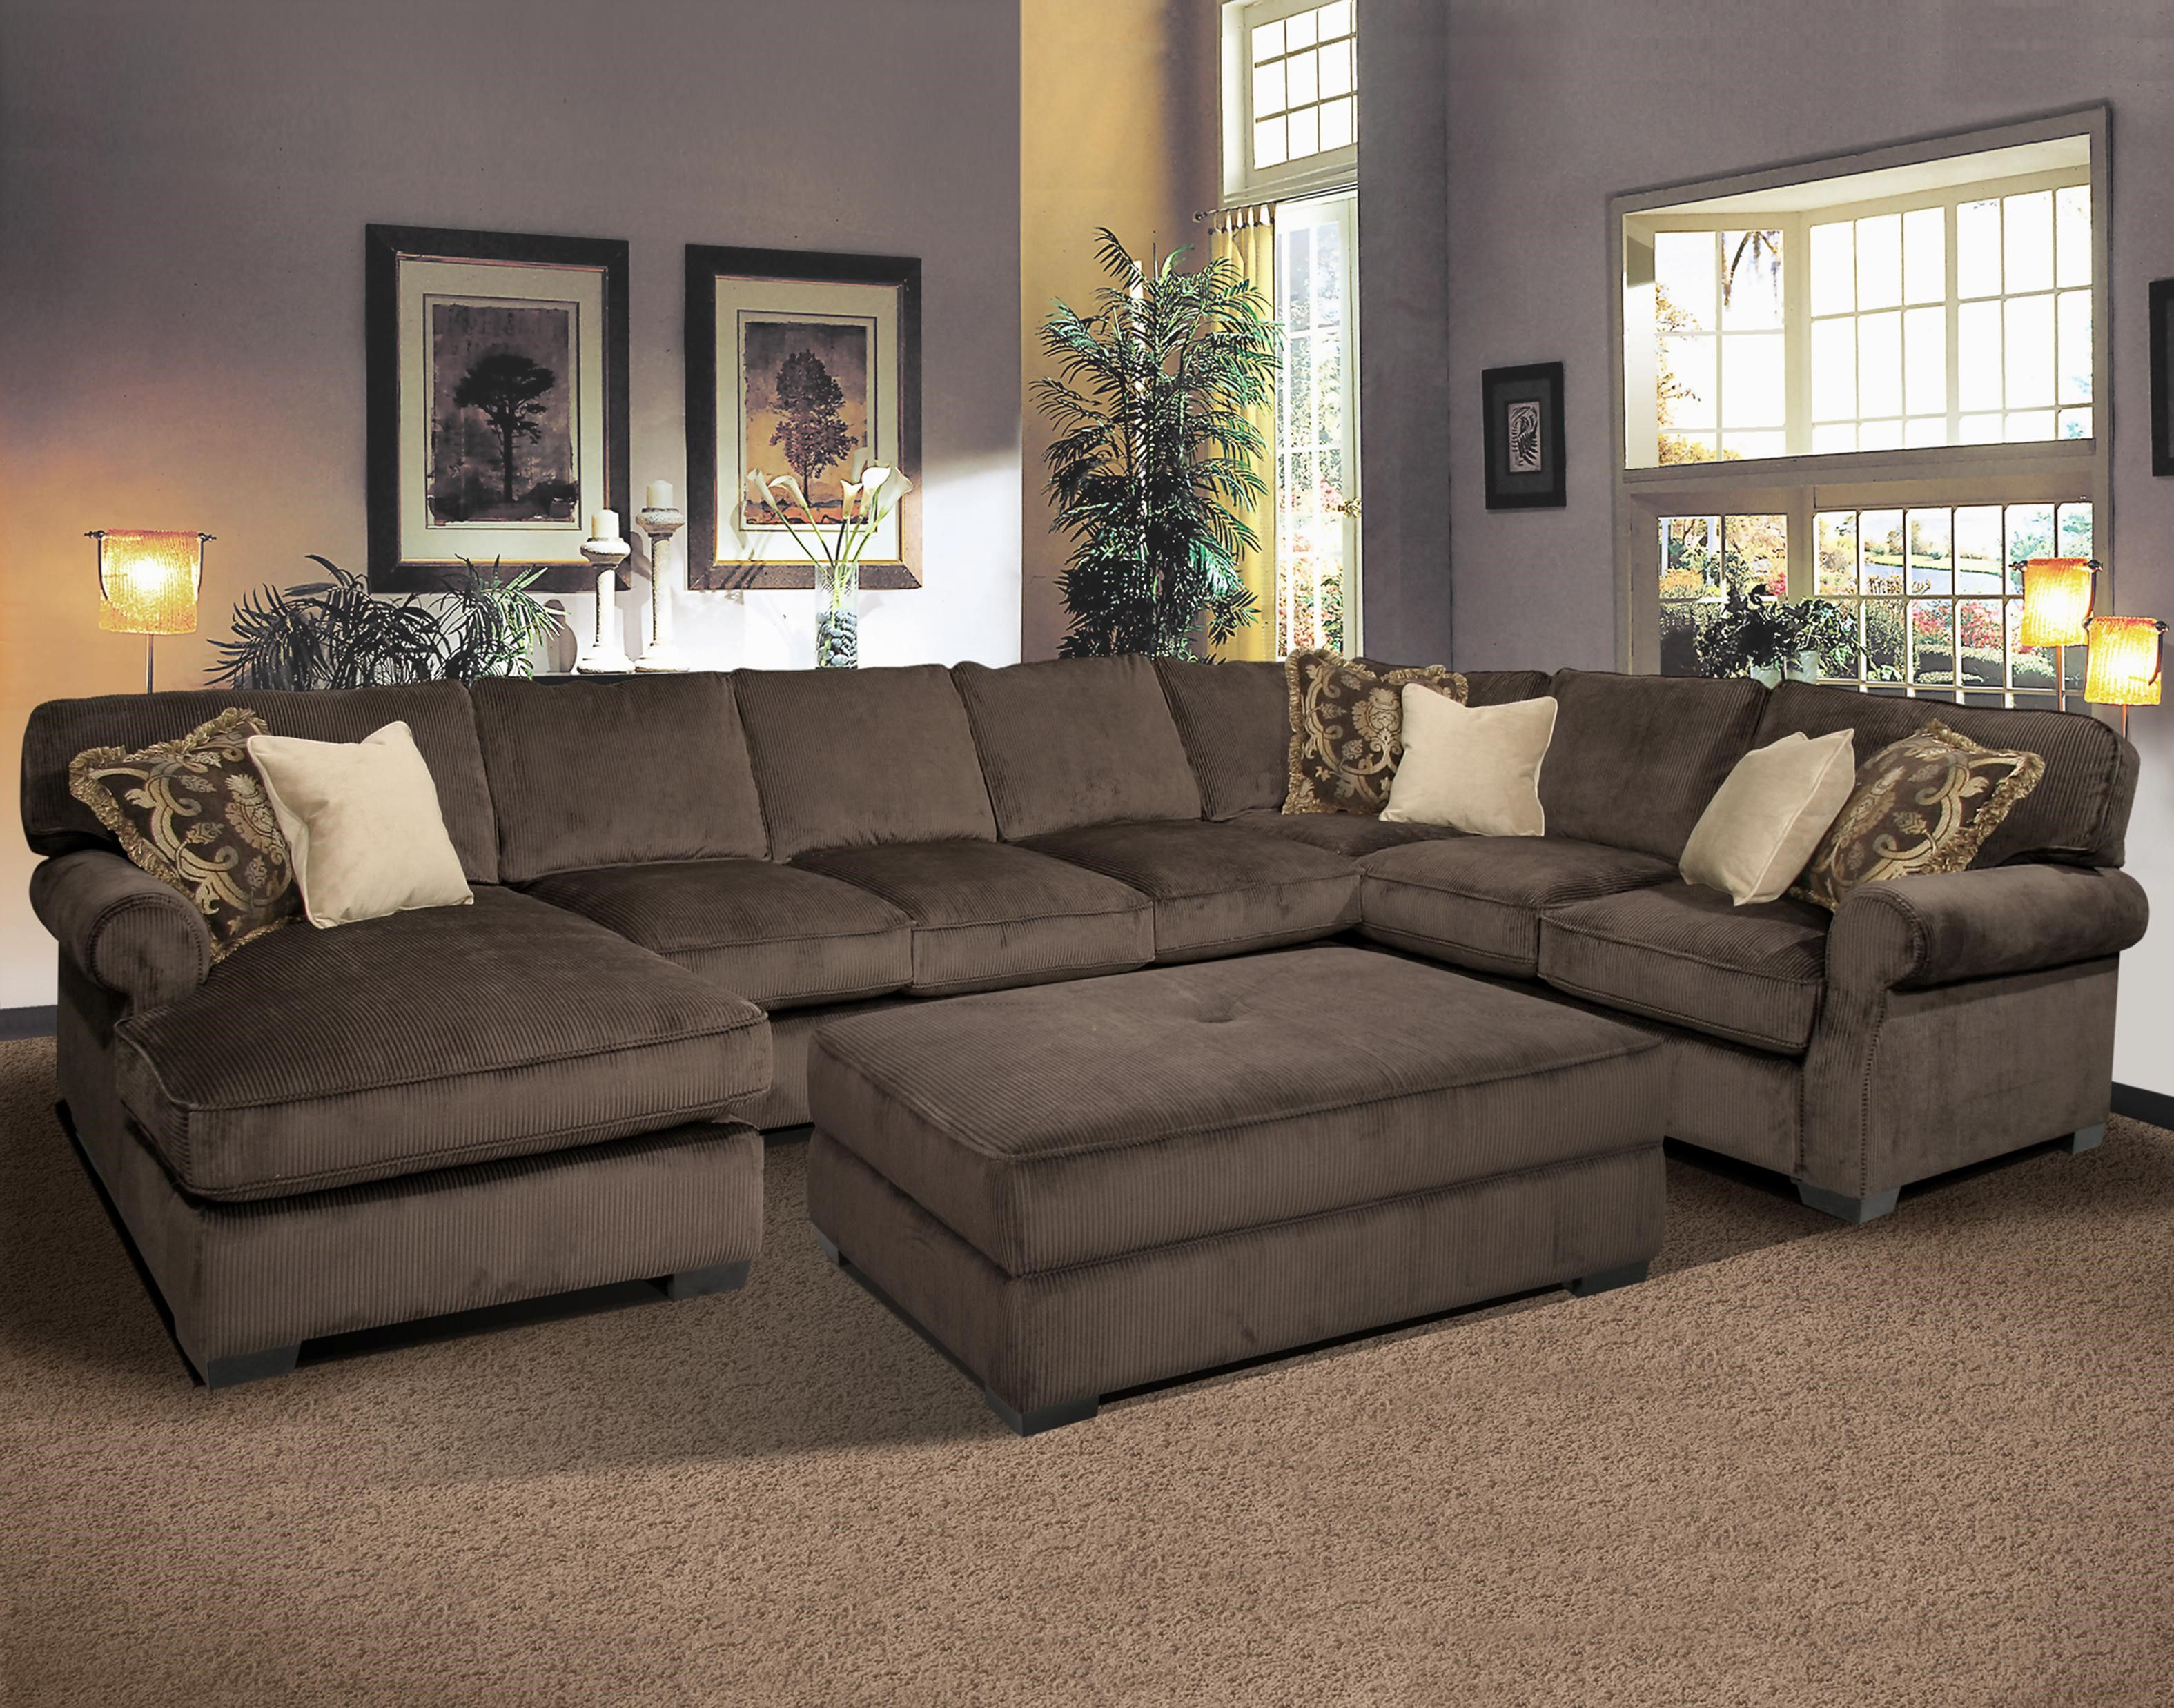 Image for Overstuffed Sectional Sofa : wide sectional sofa - Sectionals, Sofas & Couches